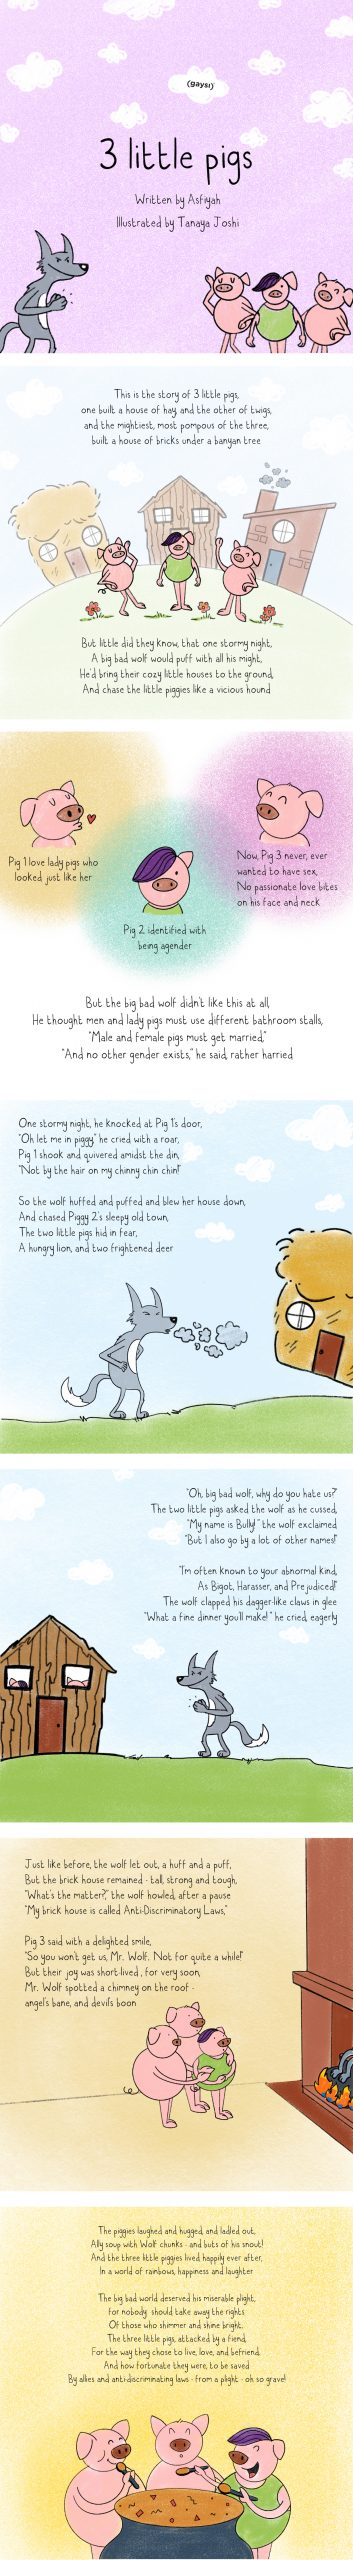 Three Little Pigs – A Queer Re-telling